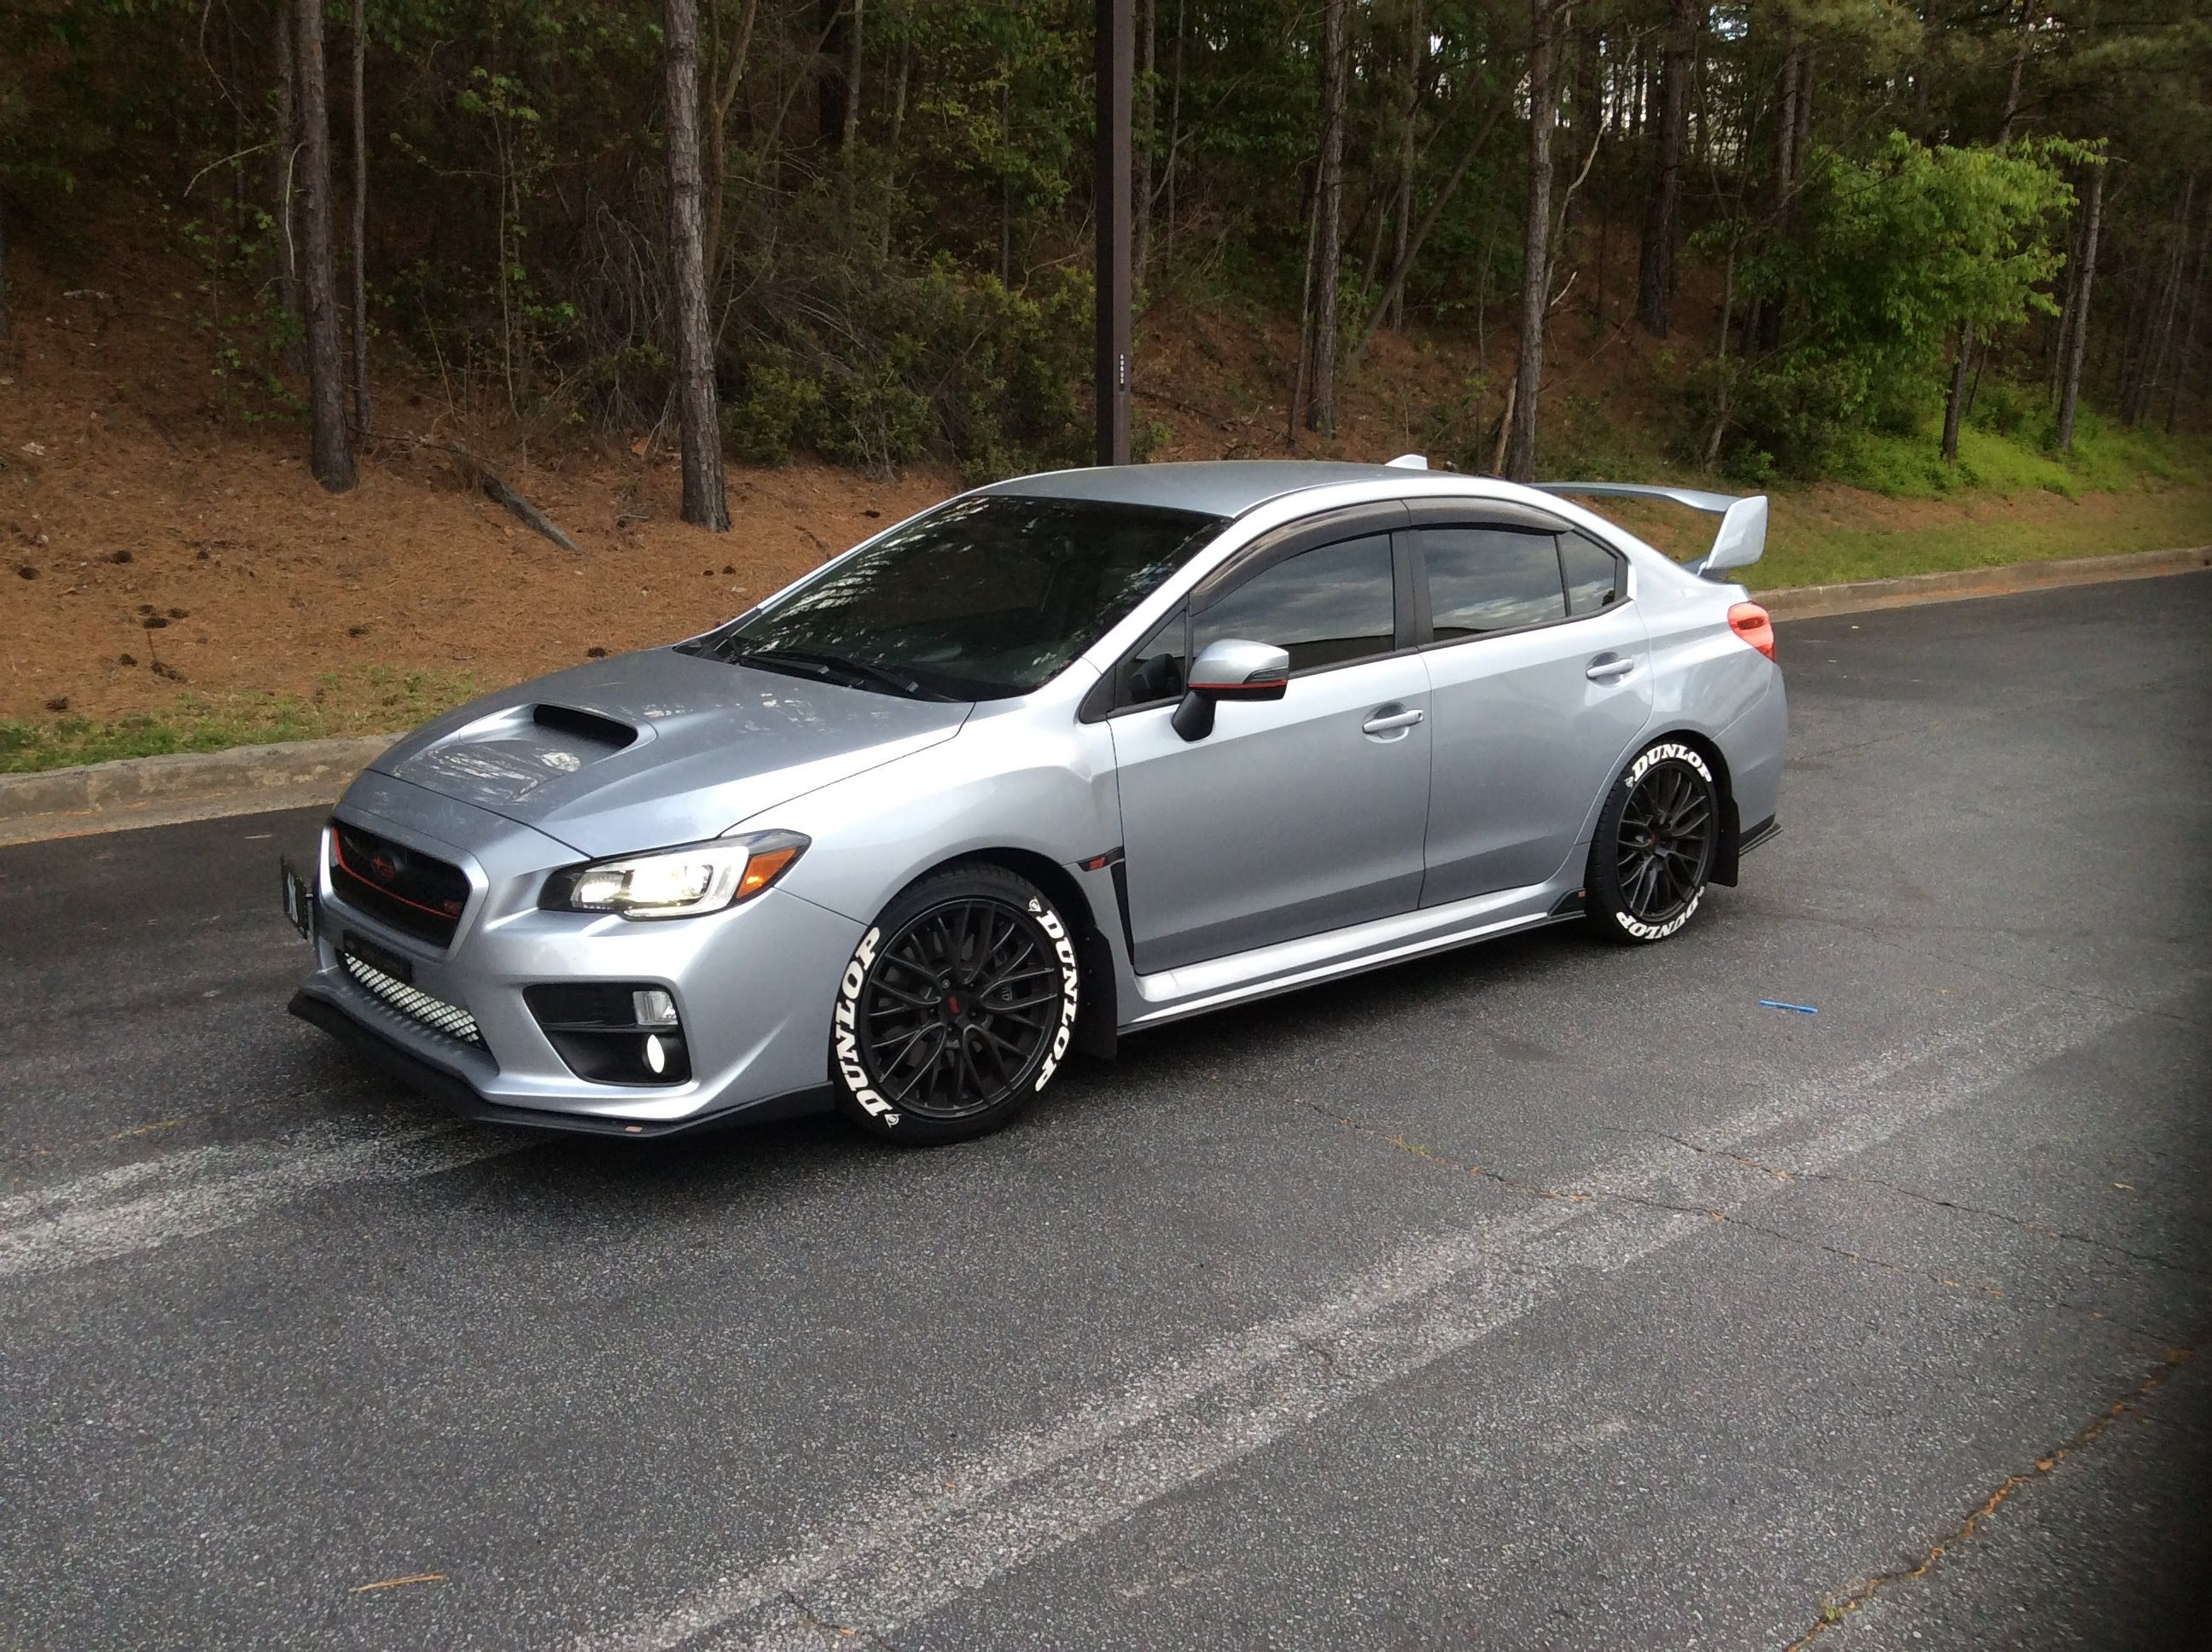 Subaru Wrx Mods >> 2016 Subaru Wrx Sti Engine Bay And Mods Updated Review